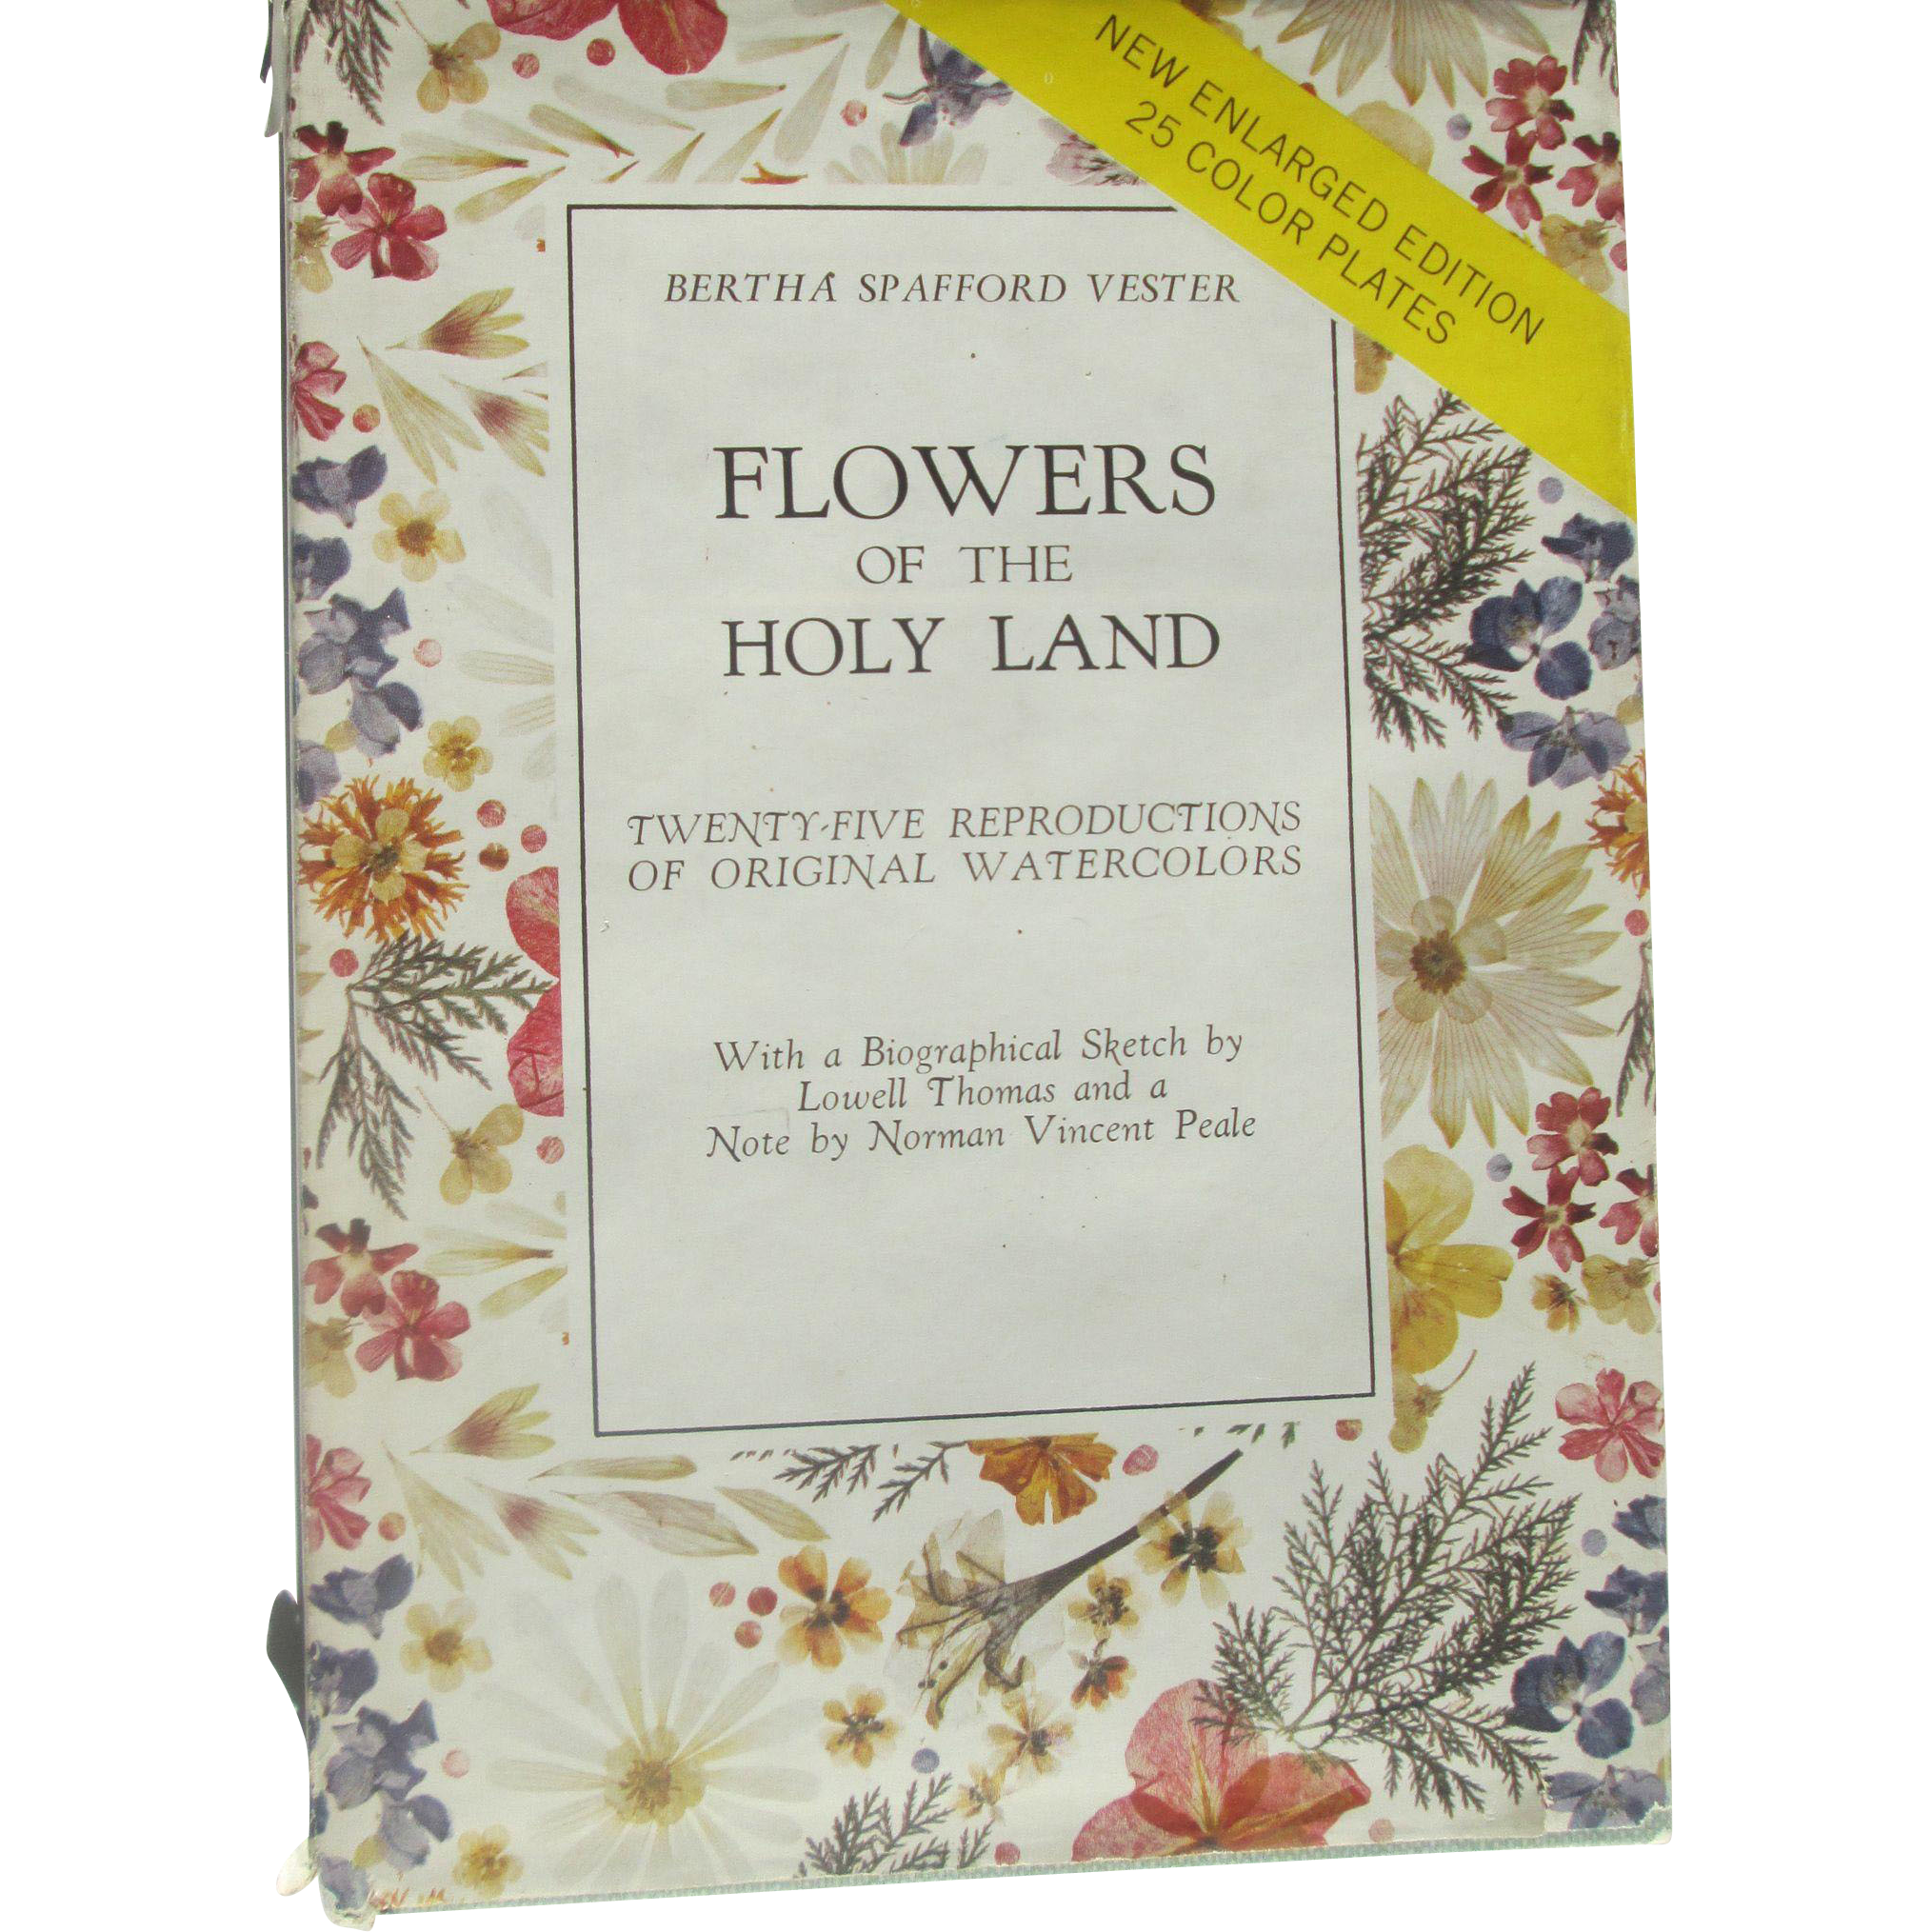 Flowers of the Holy Land, Enlarged Edition, Book by Bertha Spafford Vester